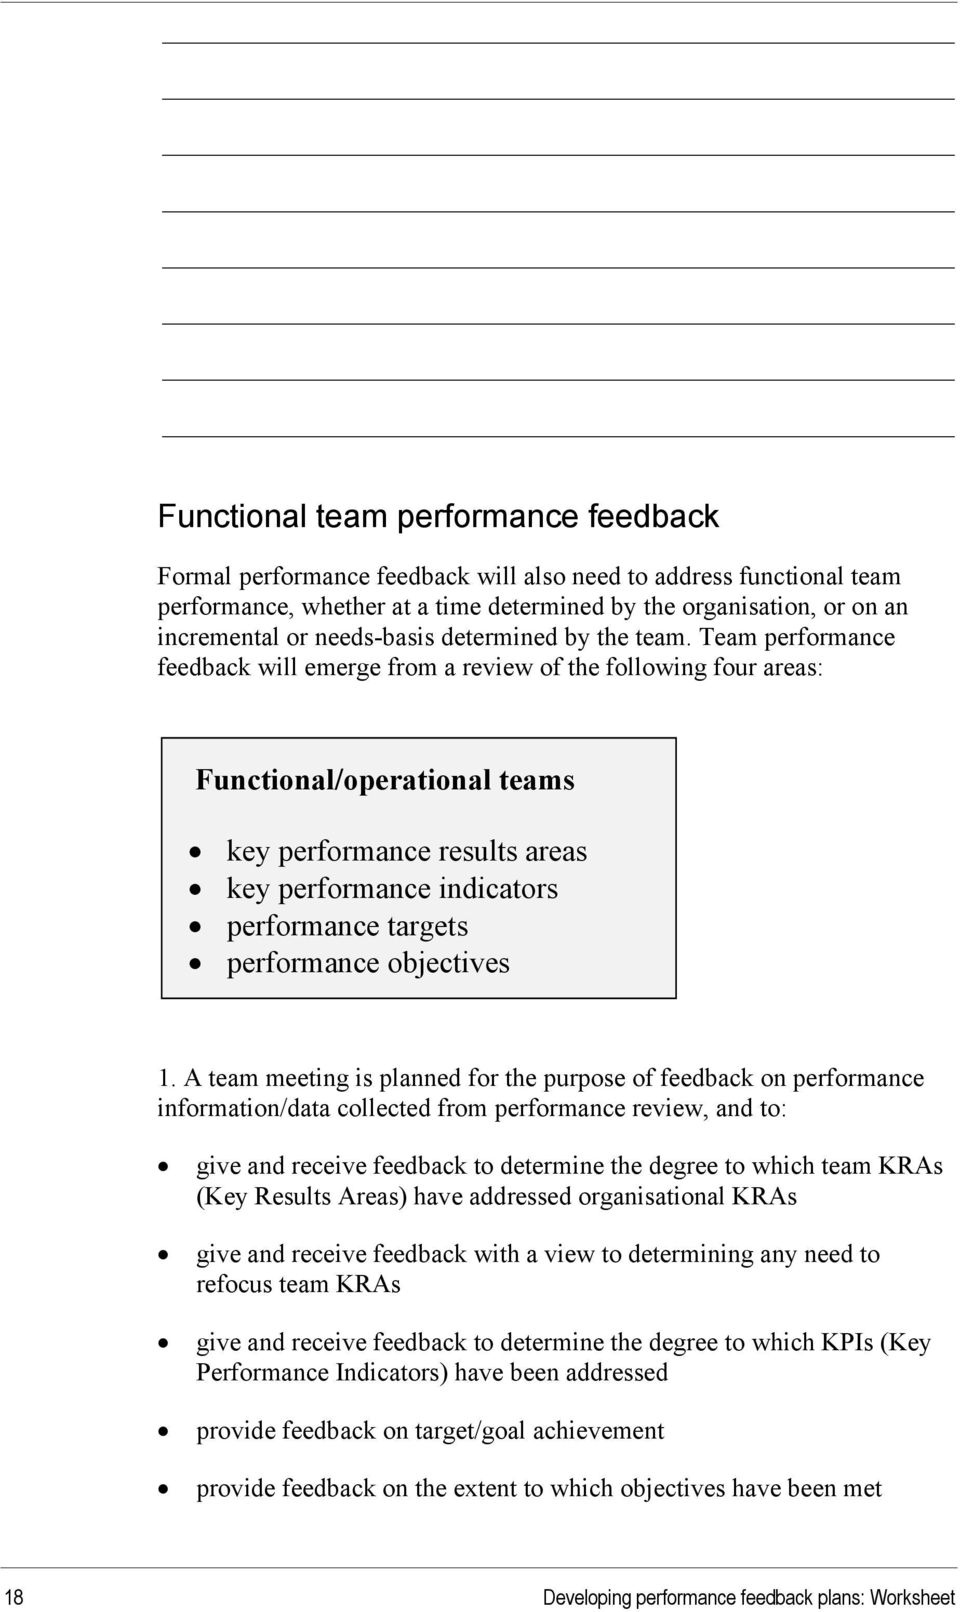 Team performance feedback will emerge from a review of the following four areas: Functional/operational teams key performance results areas key performance indicators performance targets performance